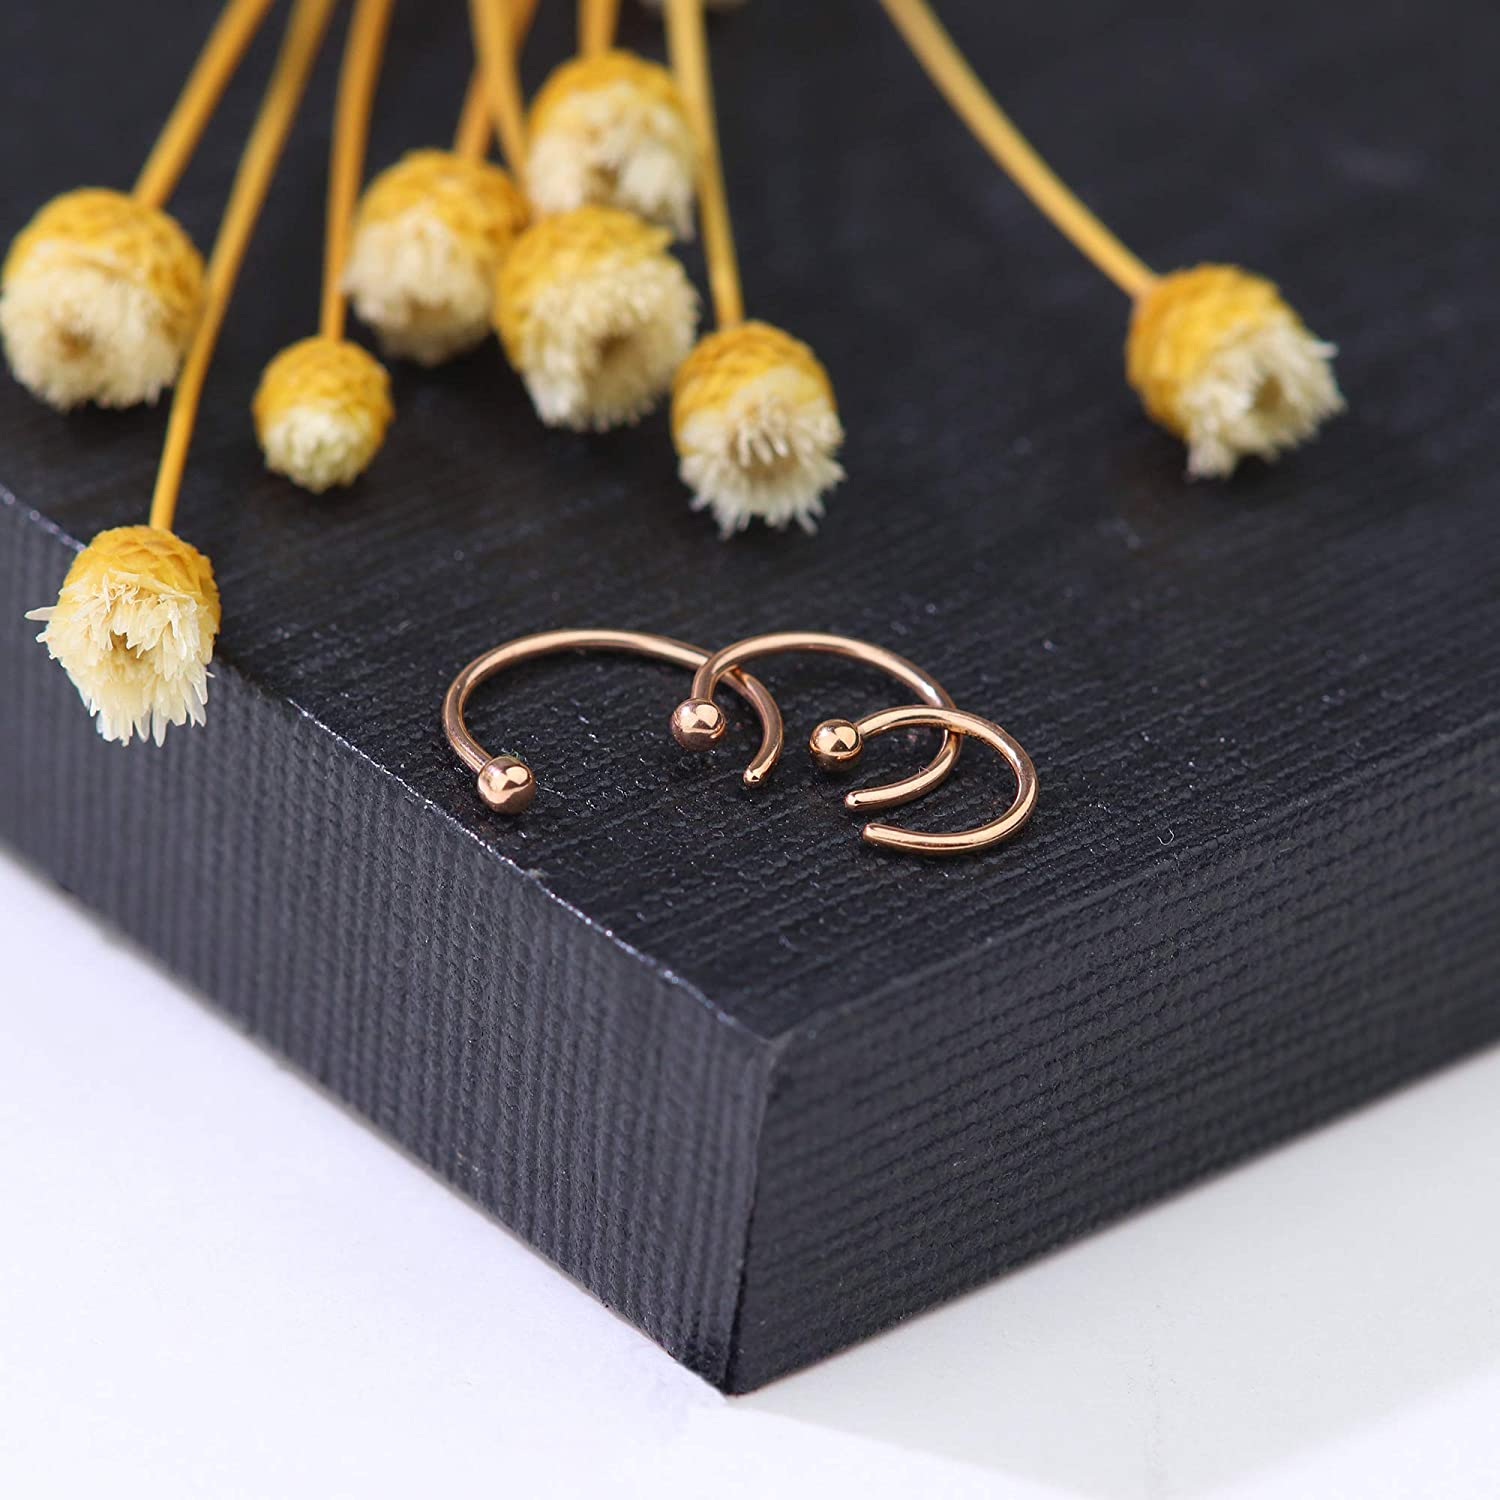 Thunaraz 20G Stainless Steel Hoop Nose Rings Stud Rings CZ Inlaid Piercing Jewelry 30PCS